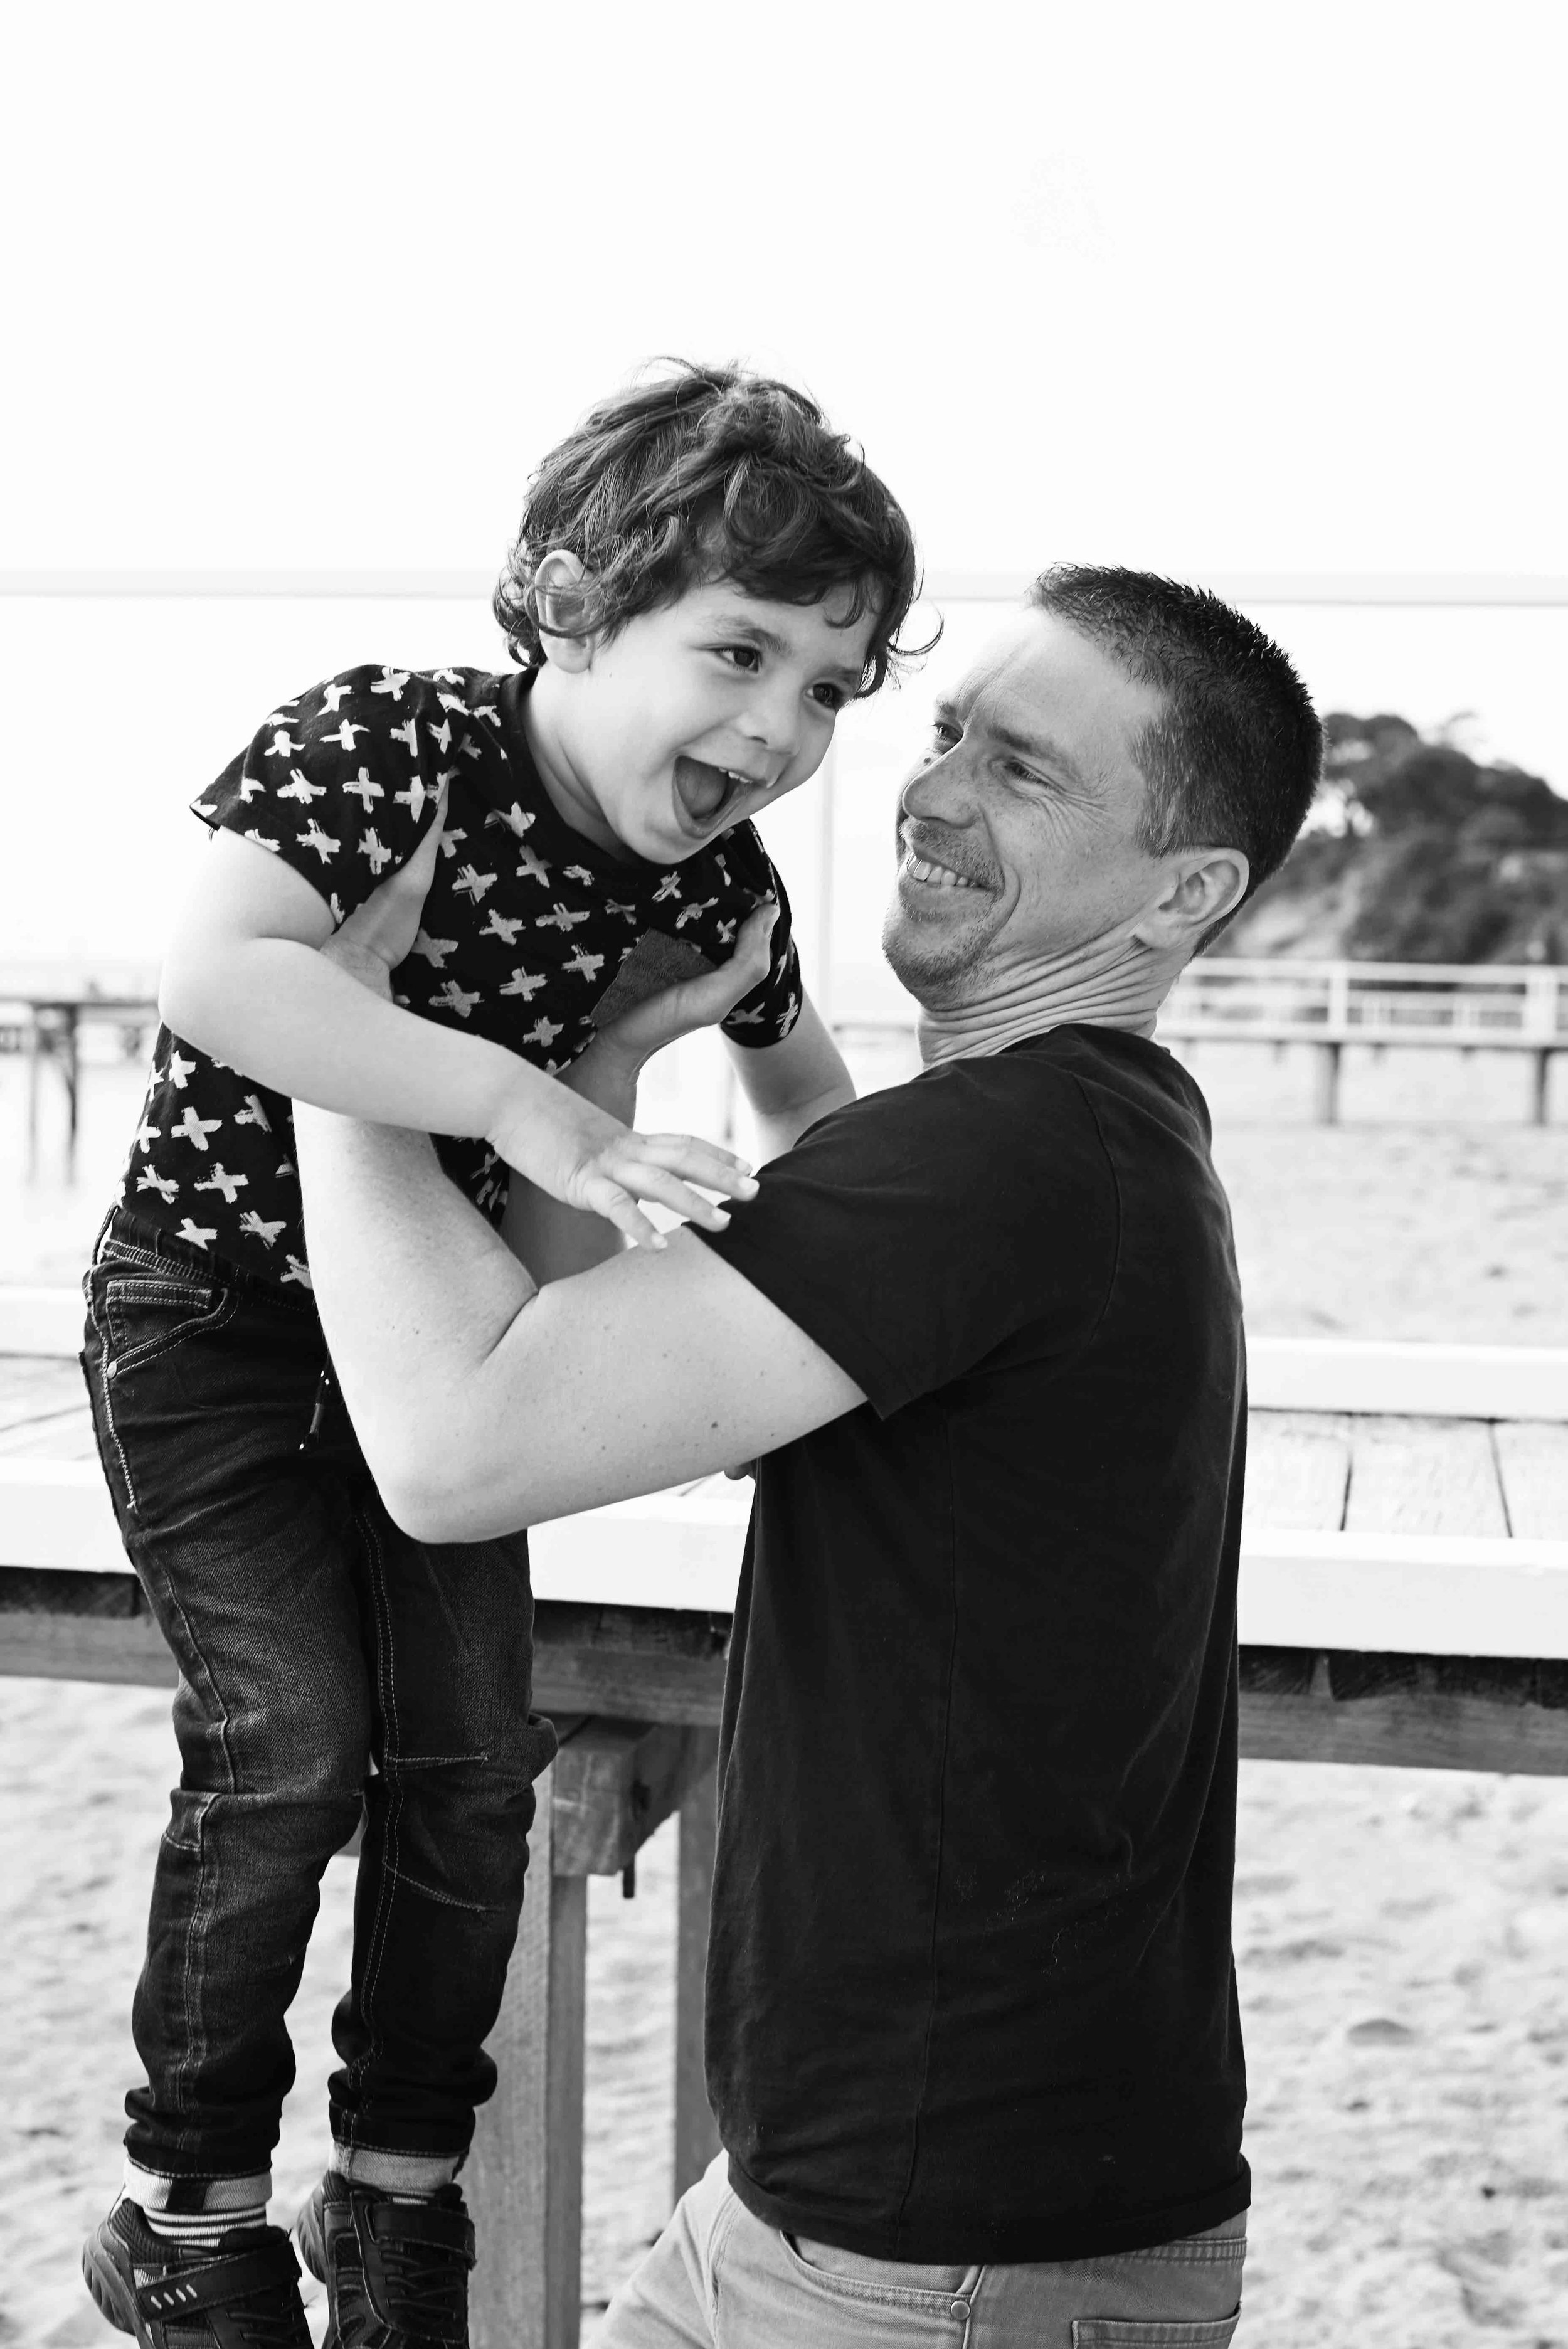 Mornington-Peninsula-Family-photographer-Rye-Sorrento-Natural-family-photos-melbourne-marissa-jade-photography-15.jpg